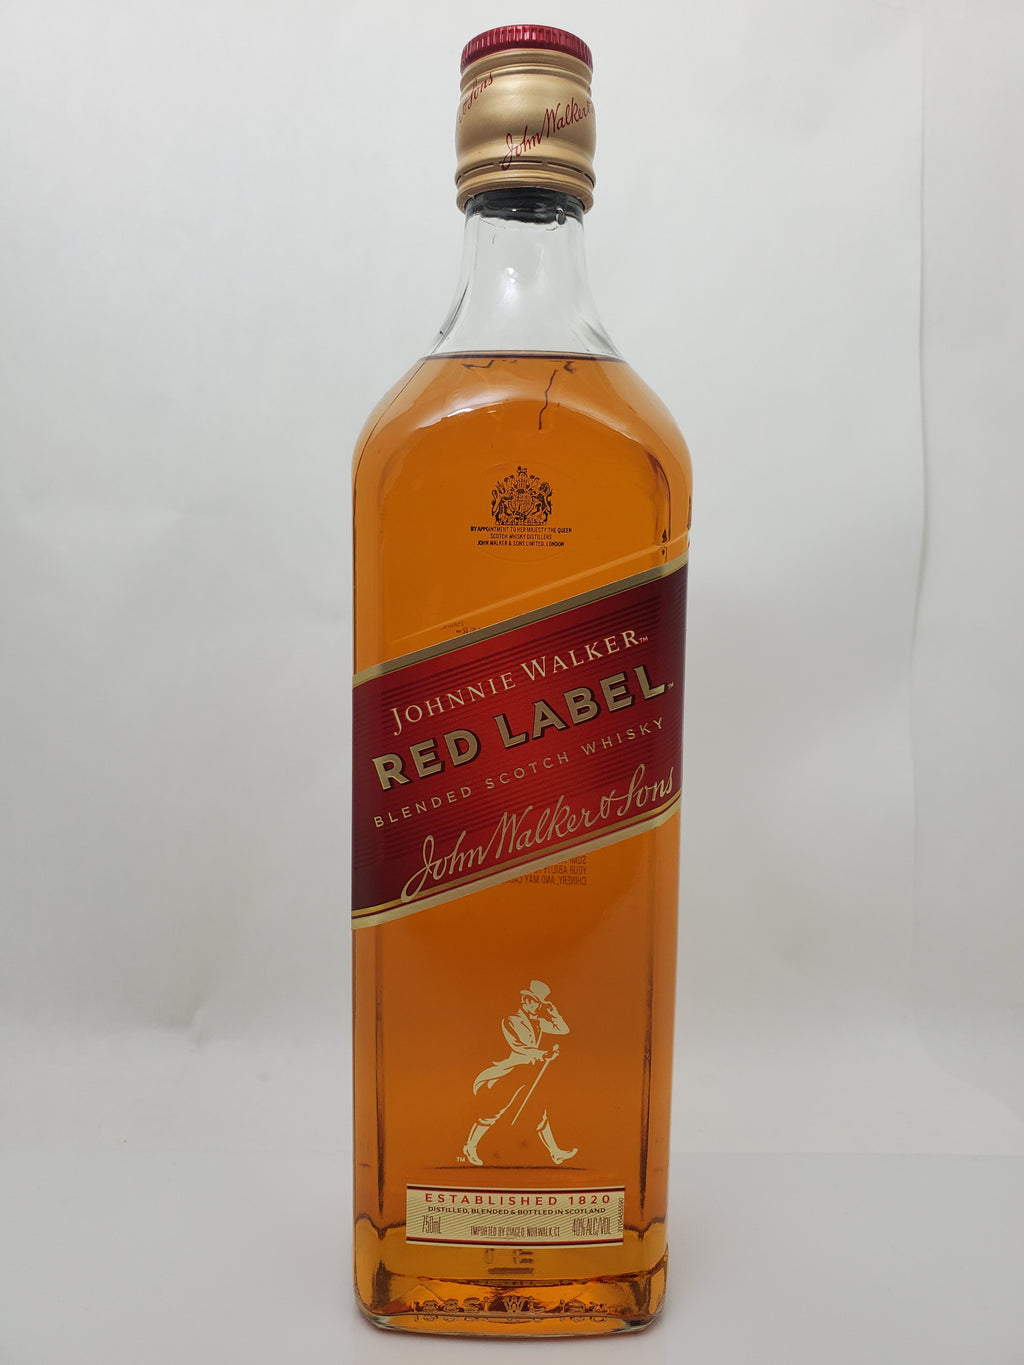 Johnny Walker Red Label Scotch Whiskey 750 ml